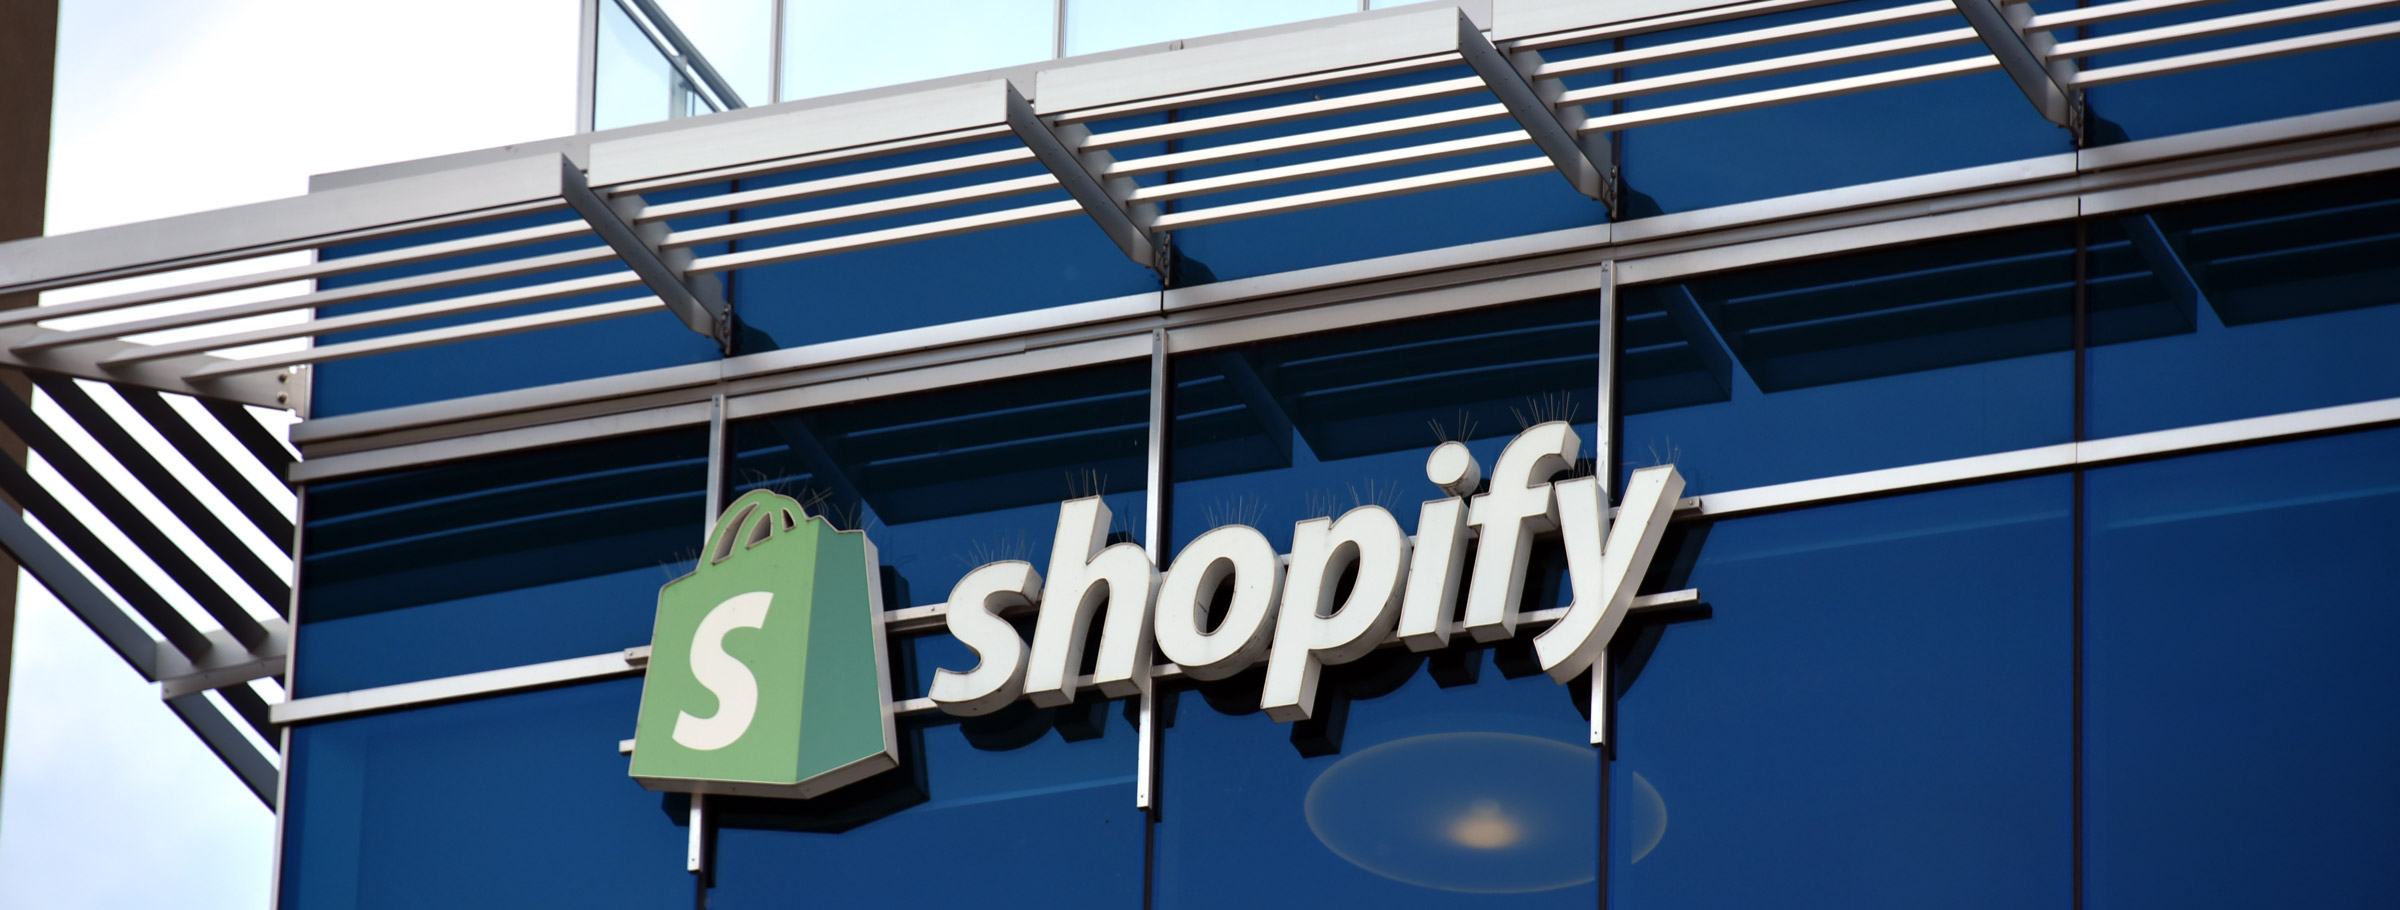 We'll Help You With Shopify